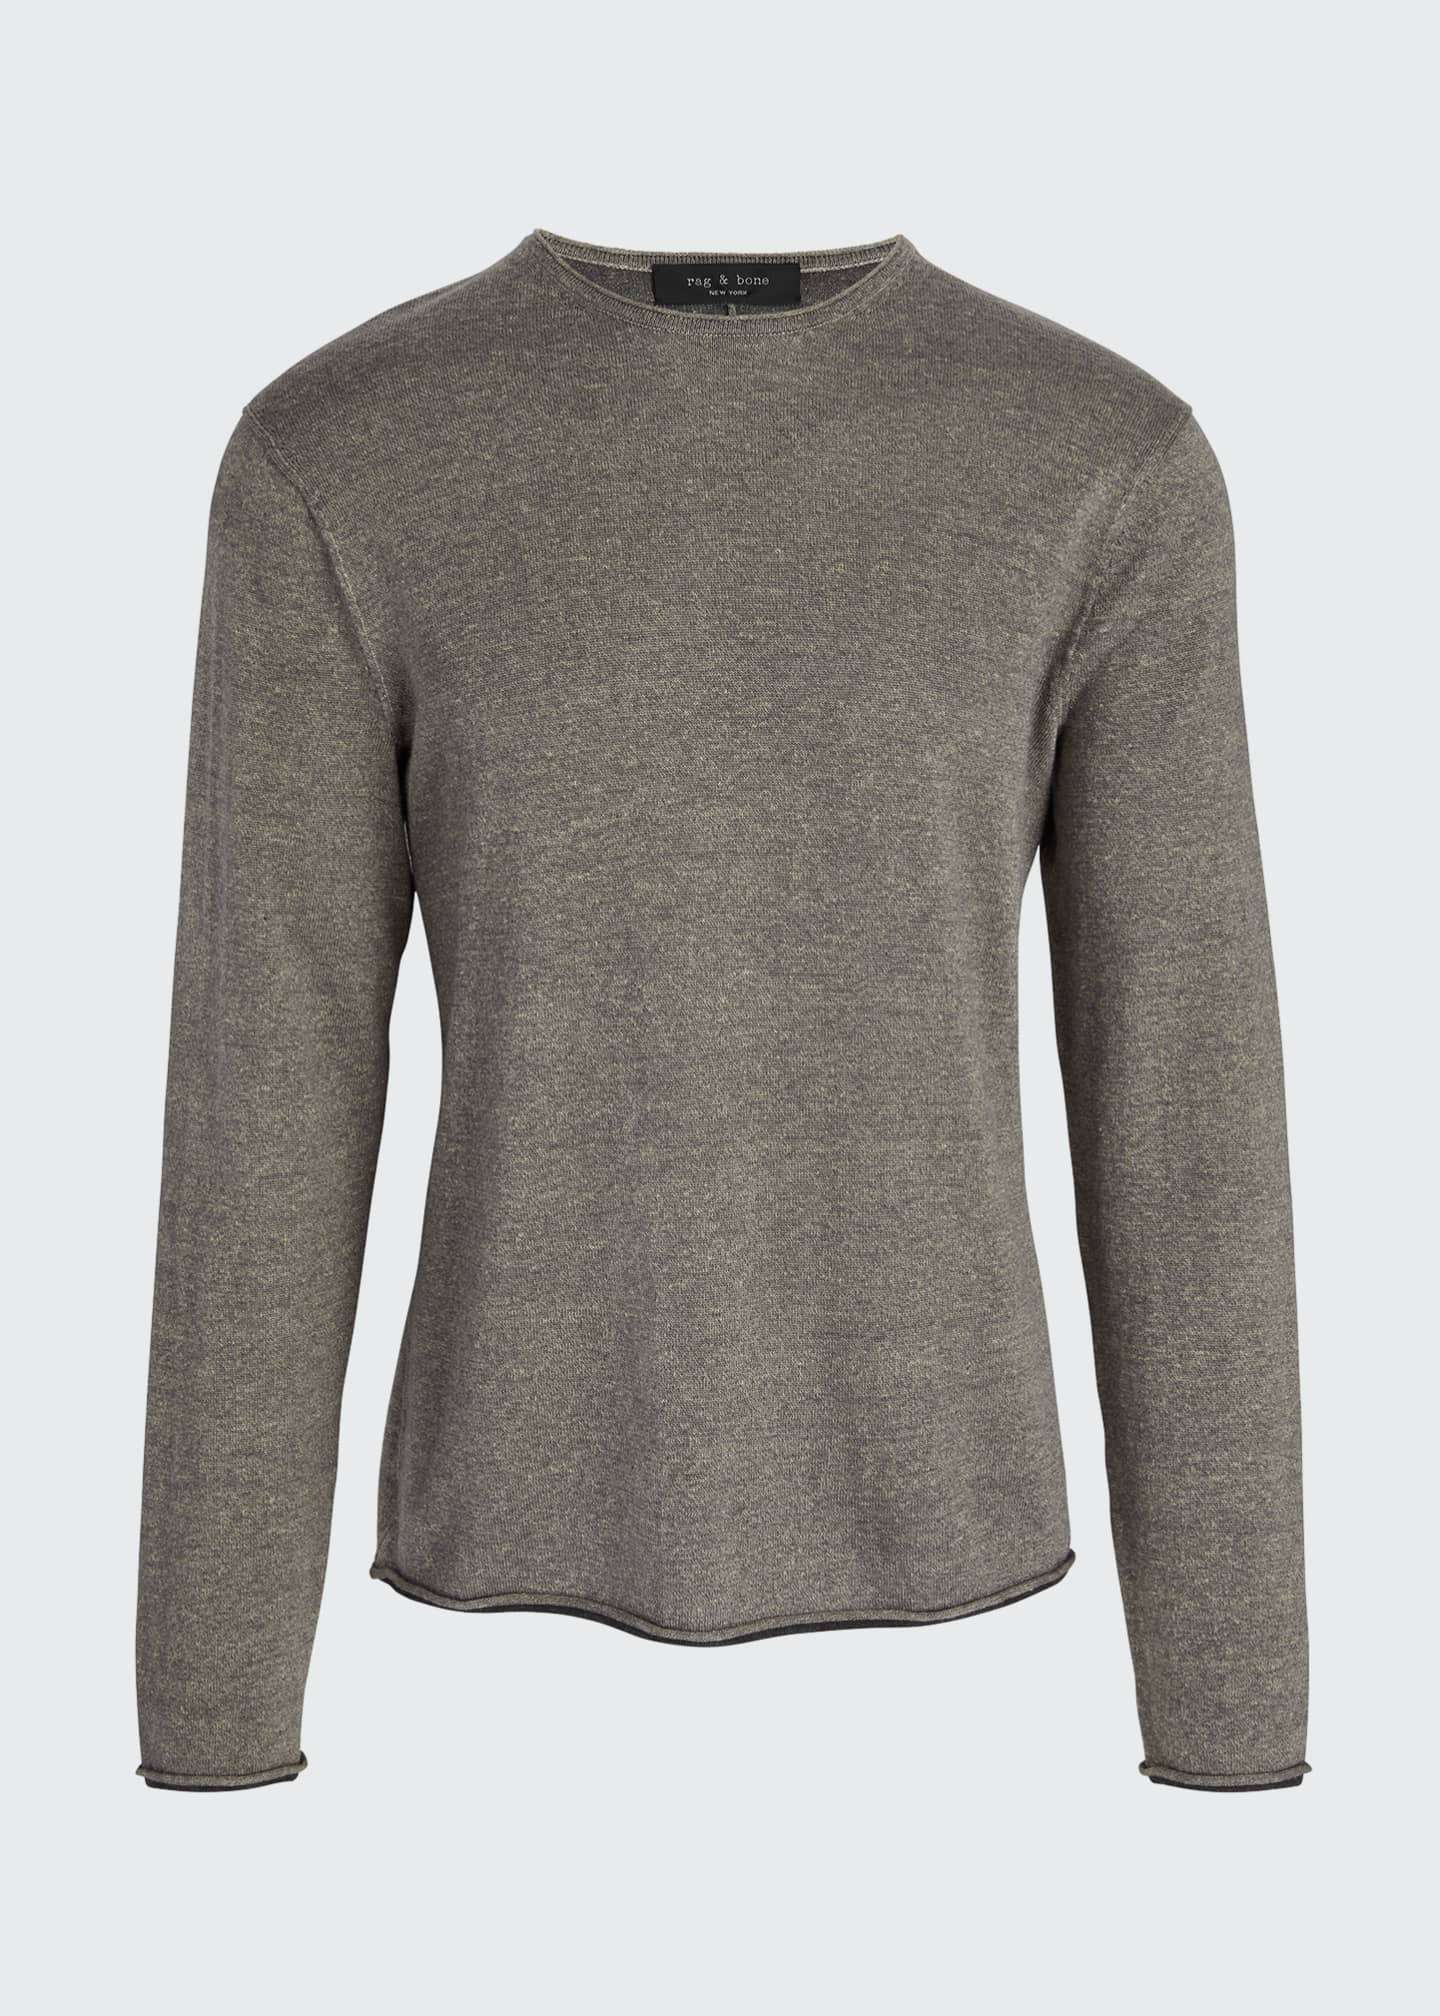 Image 5 of 5: Men's Trent Extrafine Crewneck Sweater